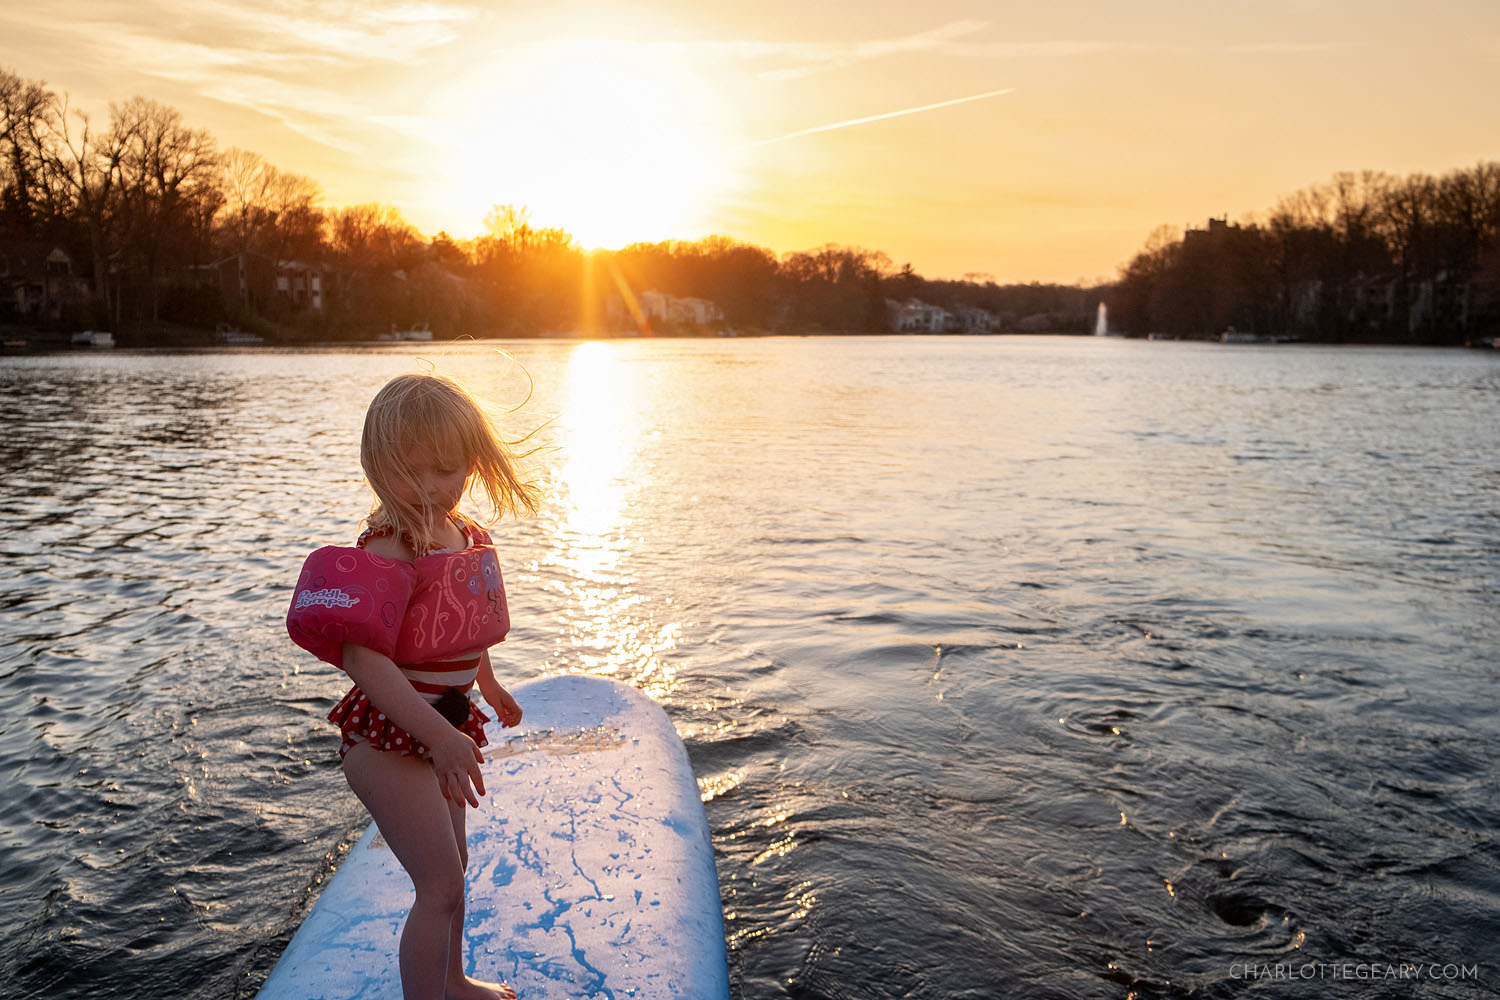 Surfer girl on Lake Anne in Reston